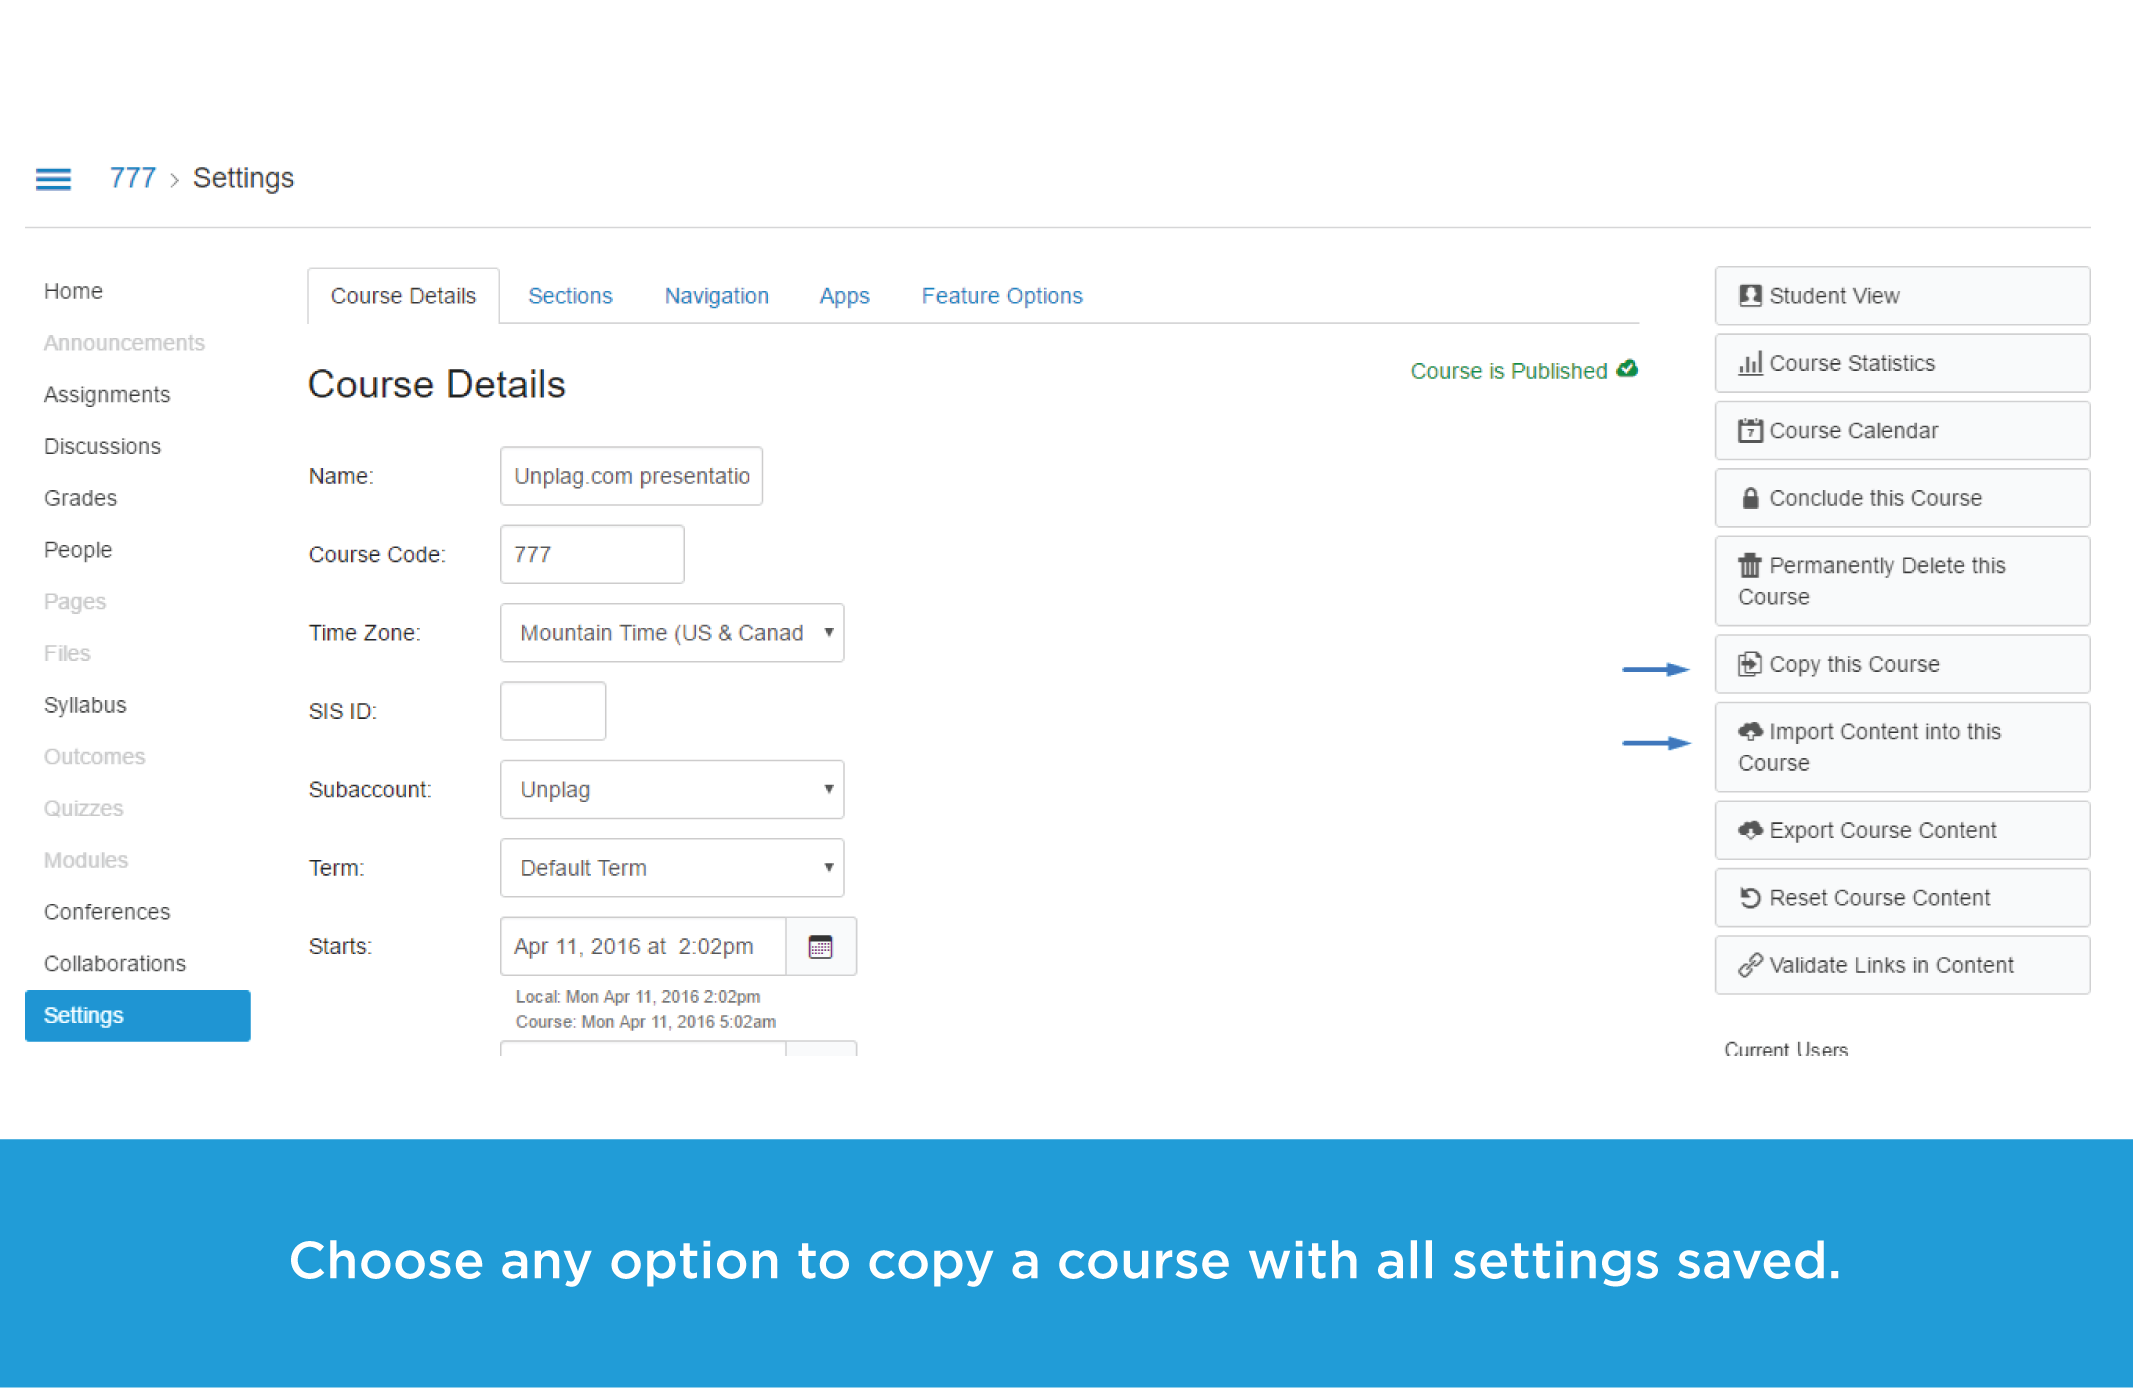 Copy a course with all settings saved